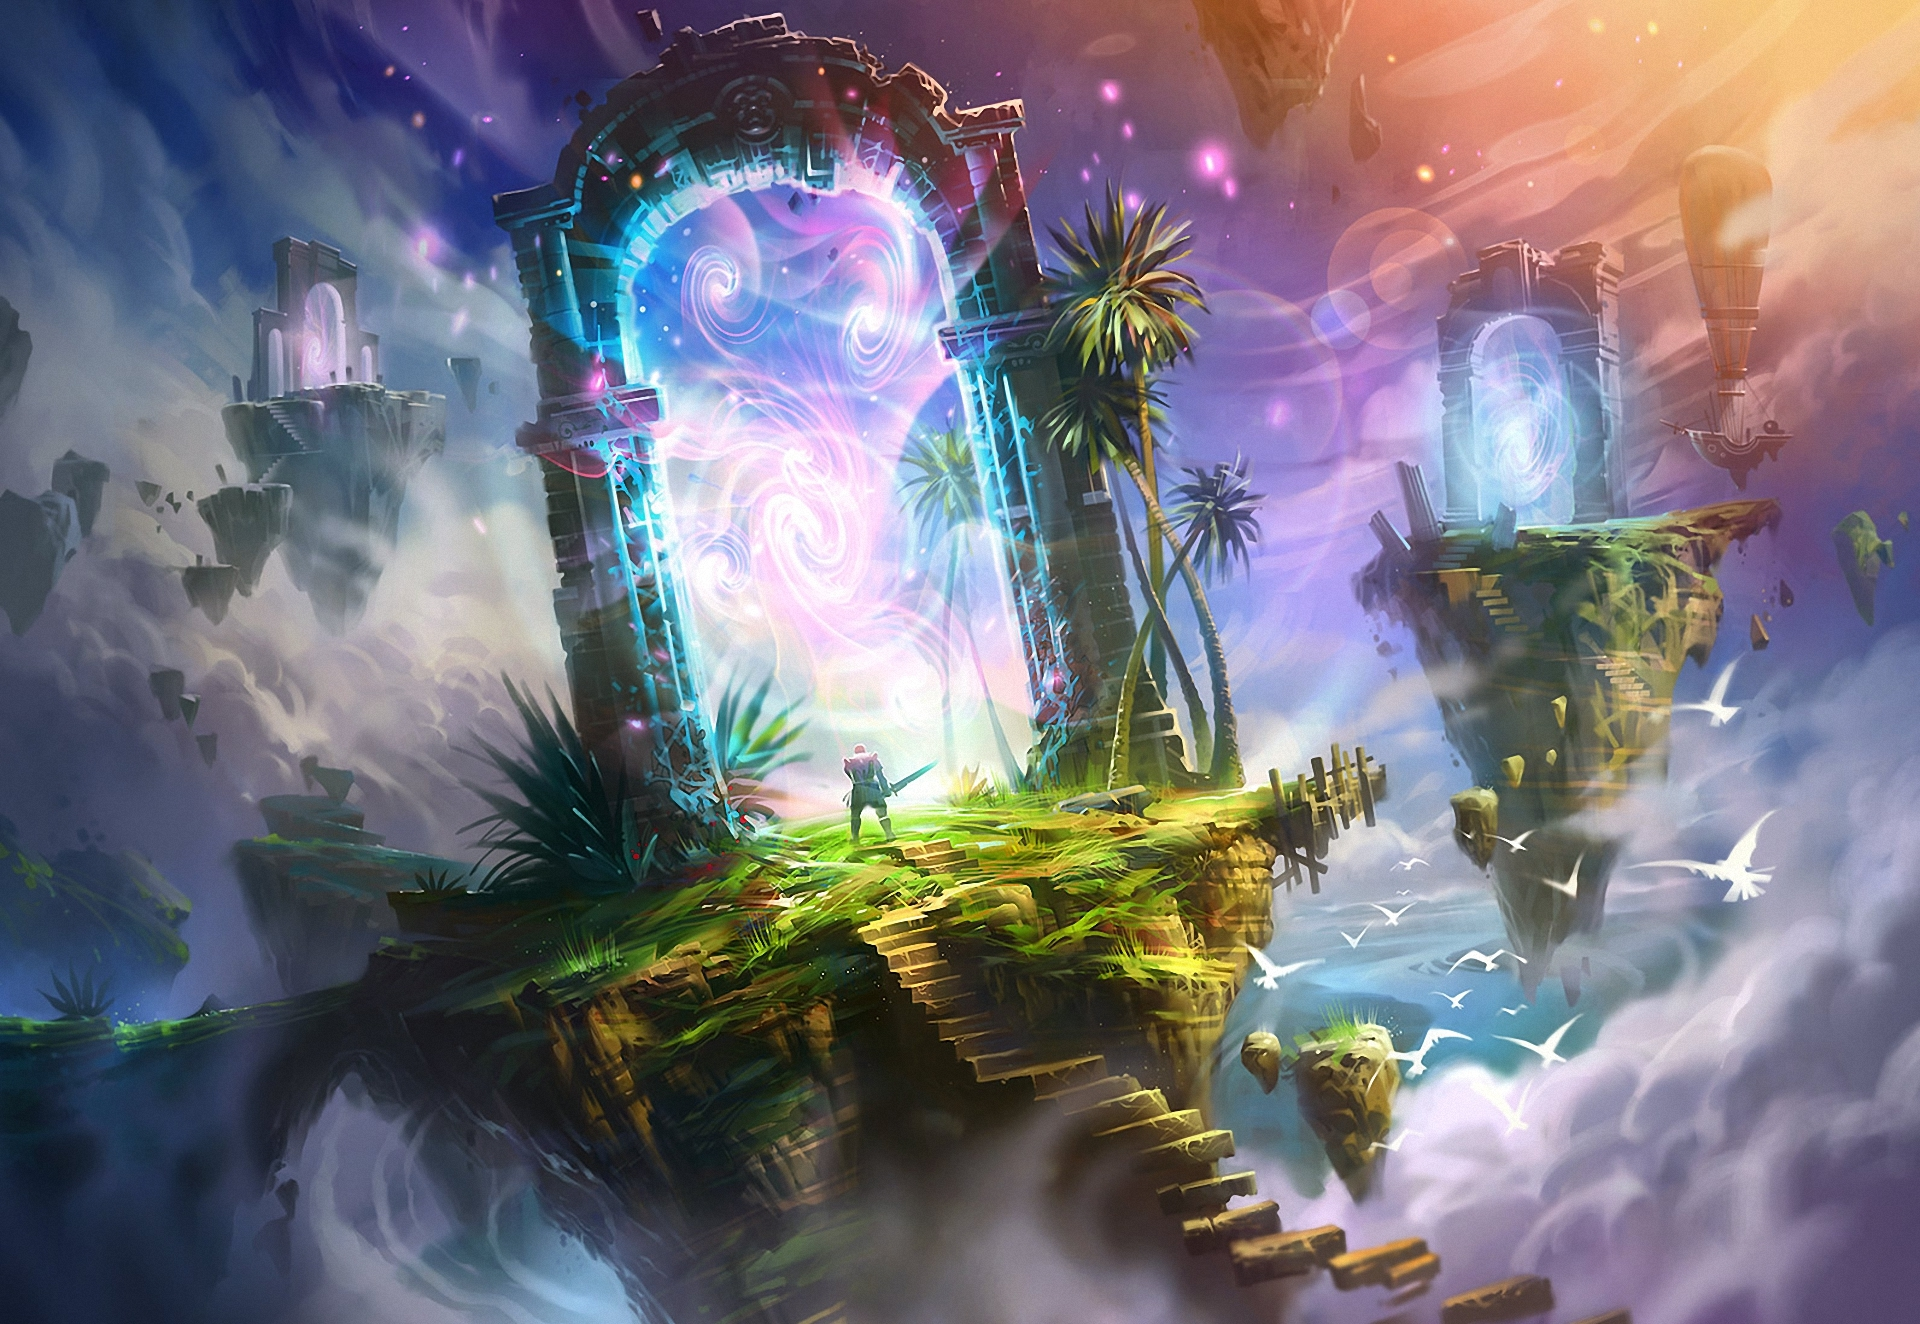 116674 download wallpaper Fantasy, Rocks, Steps, Warrior, Portal, Art screensavers and pictures for free